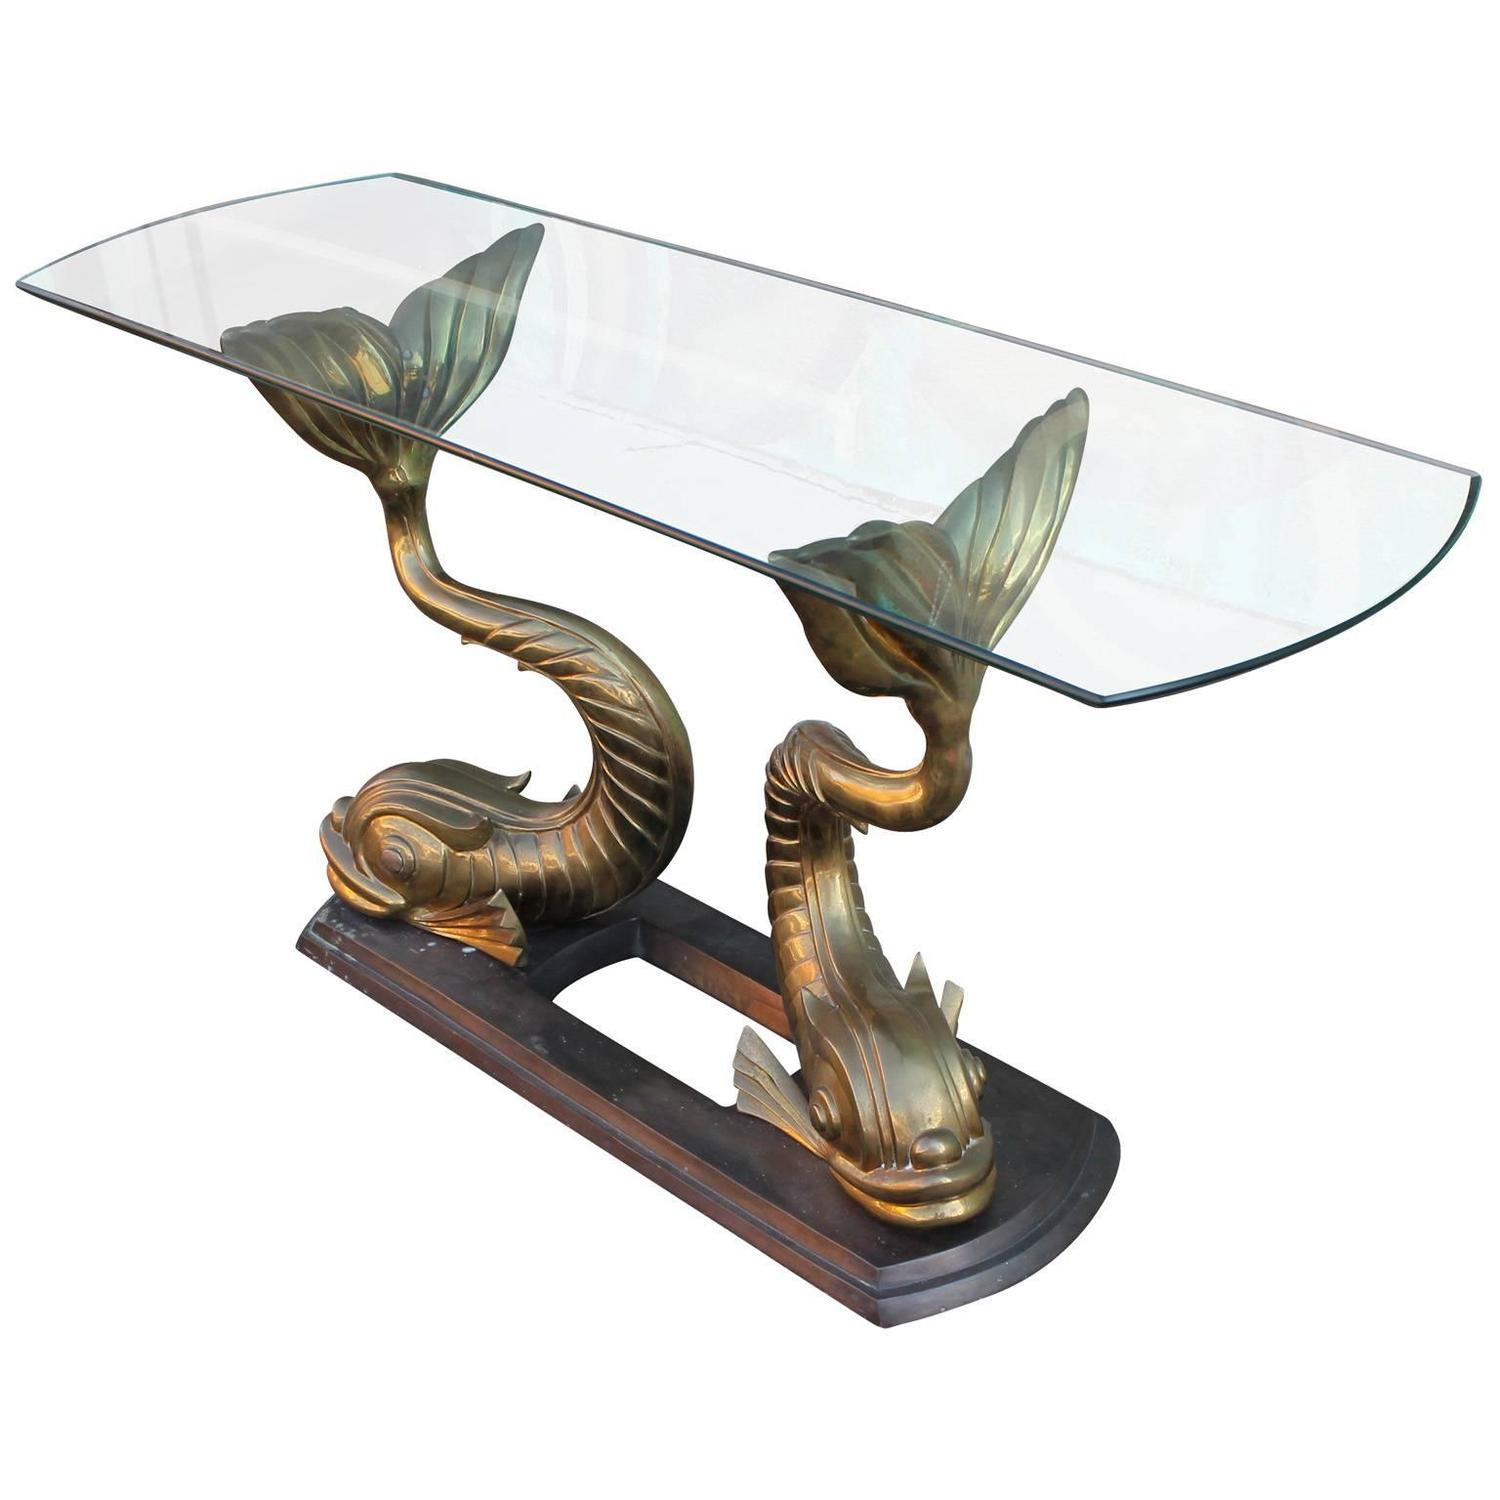 Magnificent sculptural brass koi fish console table at 1stdibs for Koi furniture